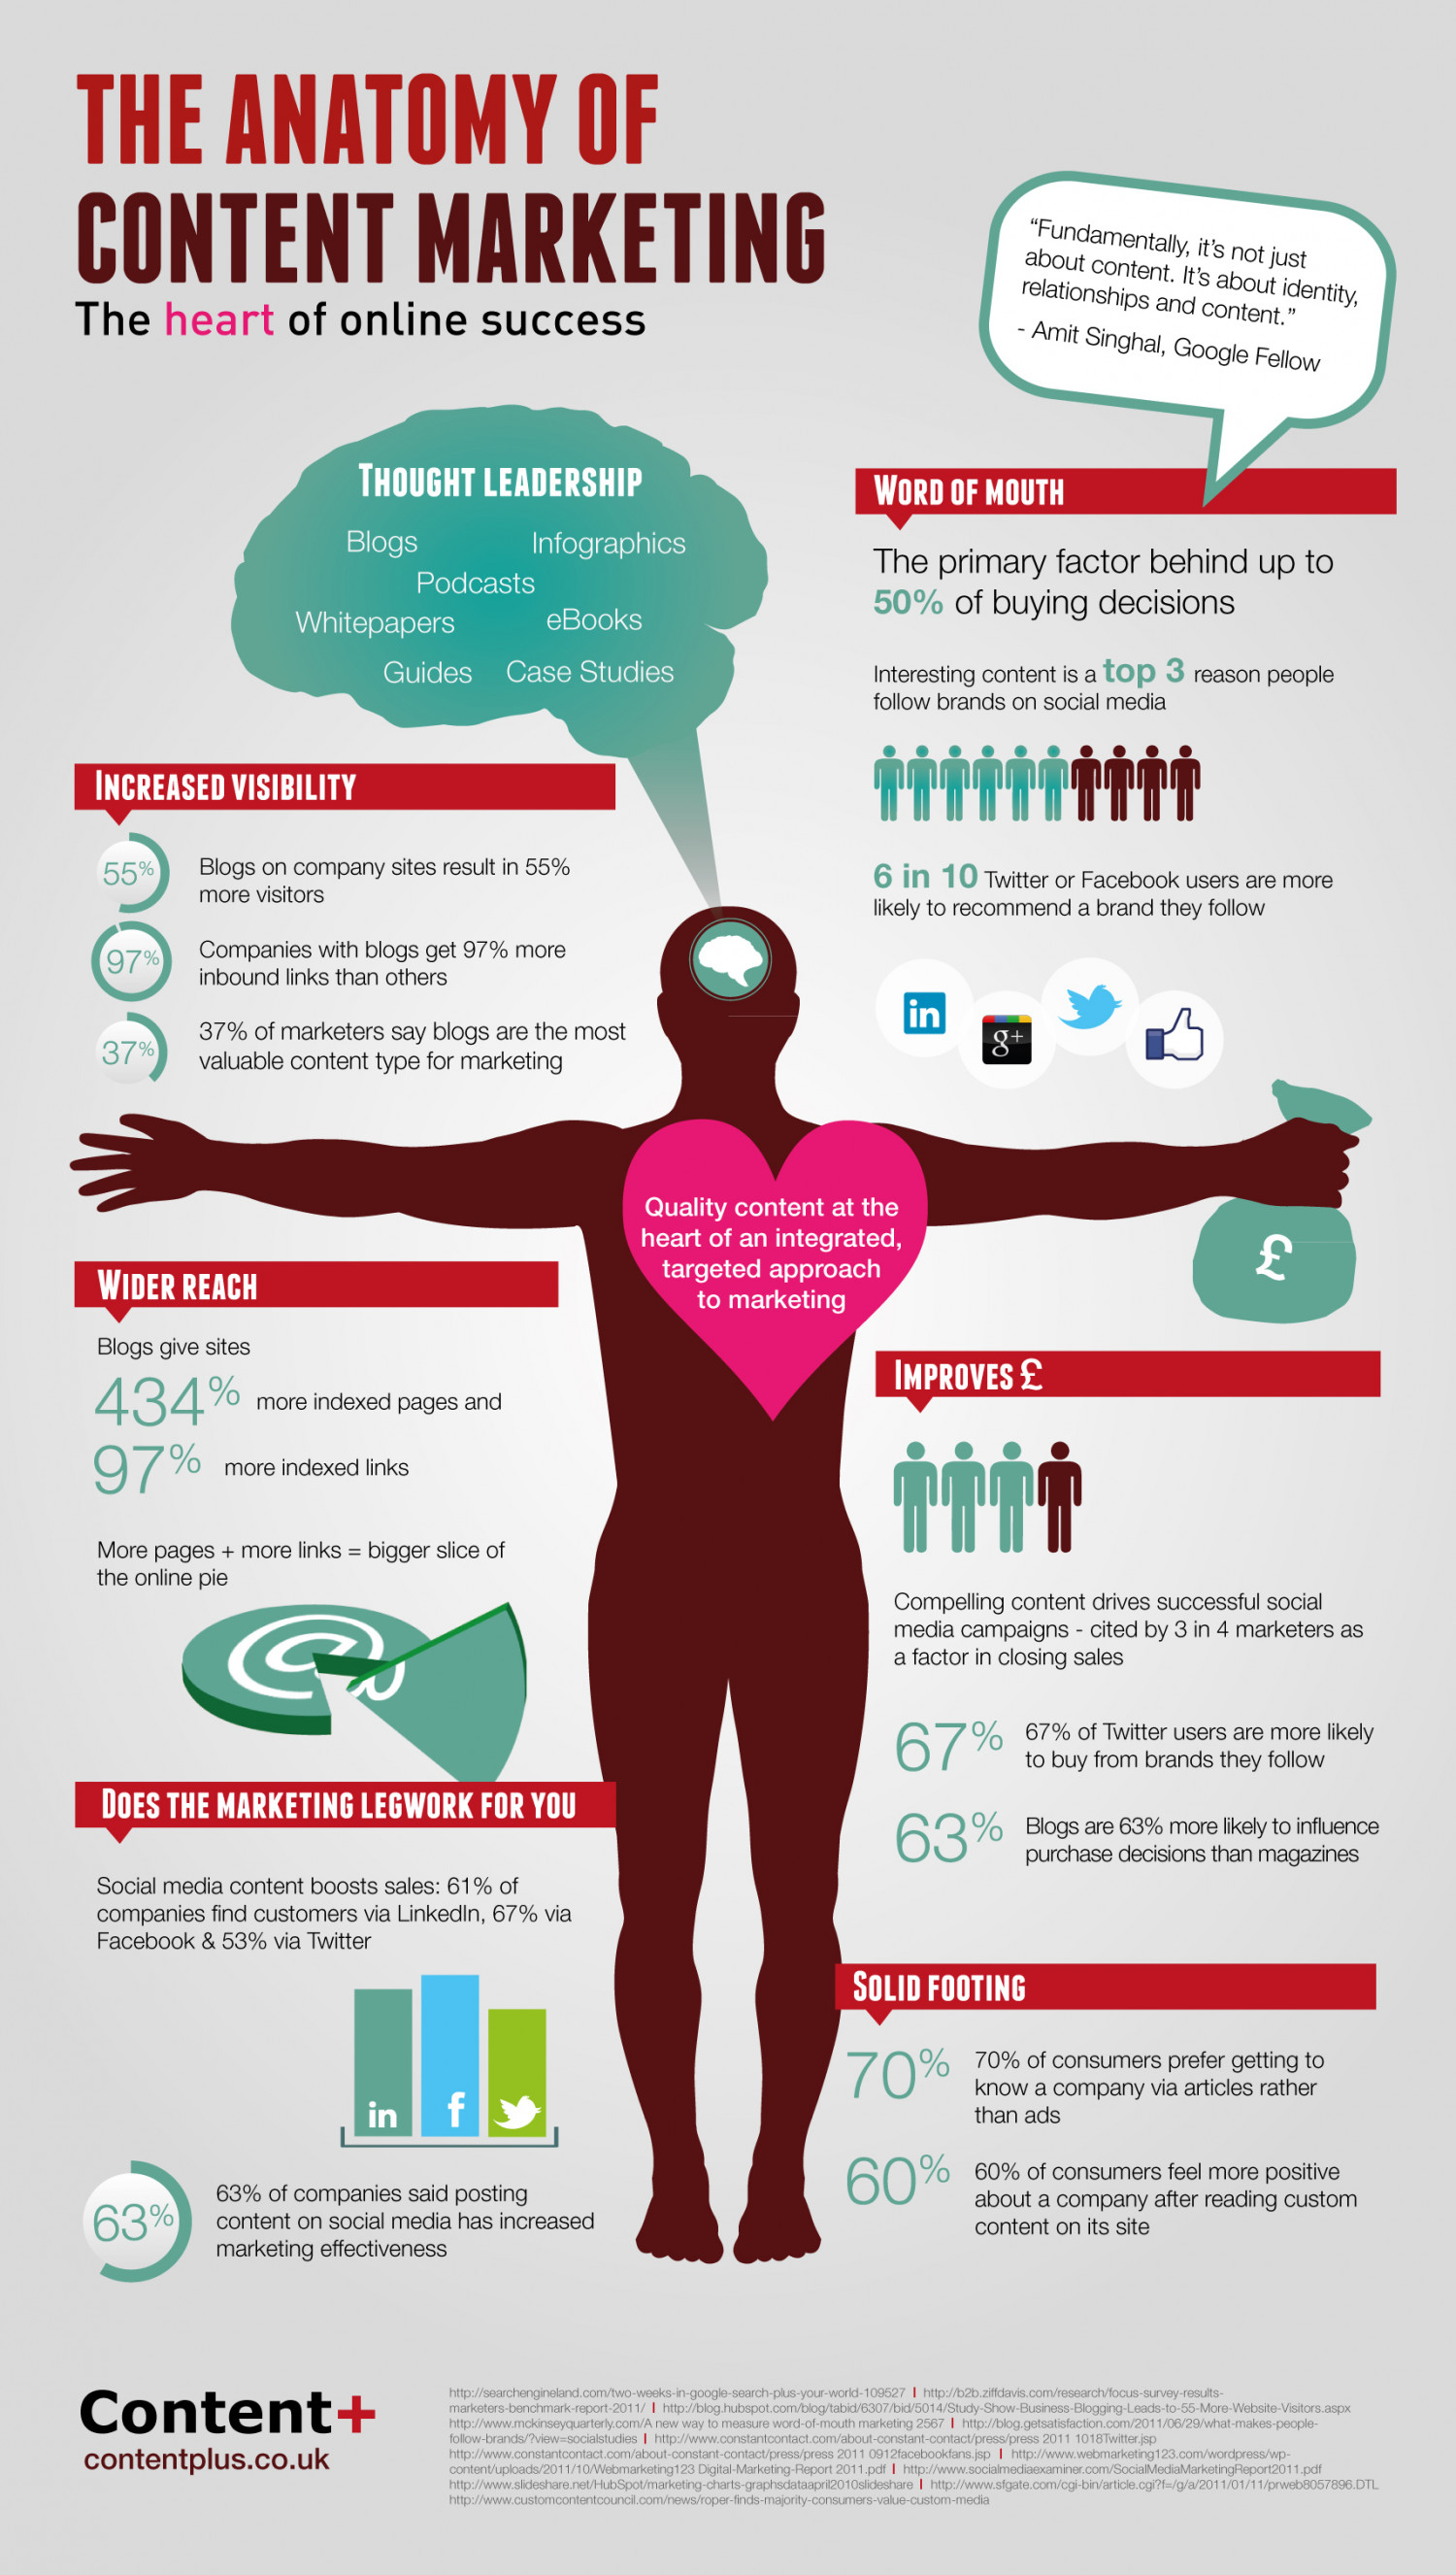 The Anatomy of Content Marketing Infographic